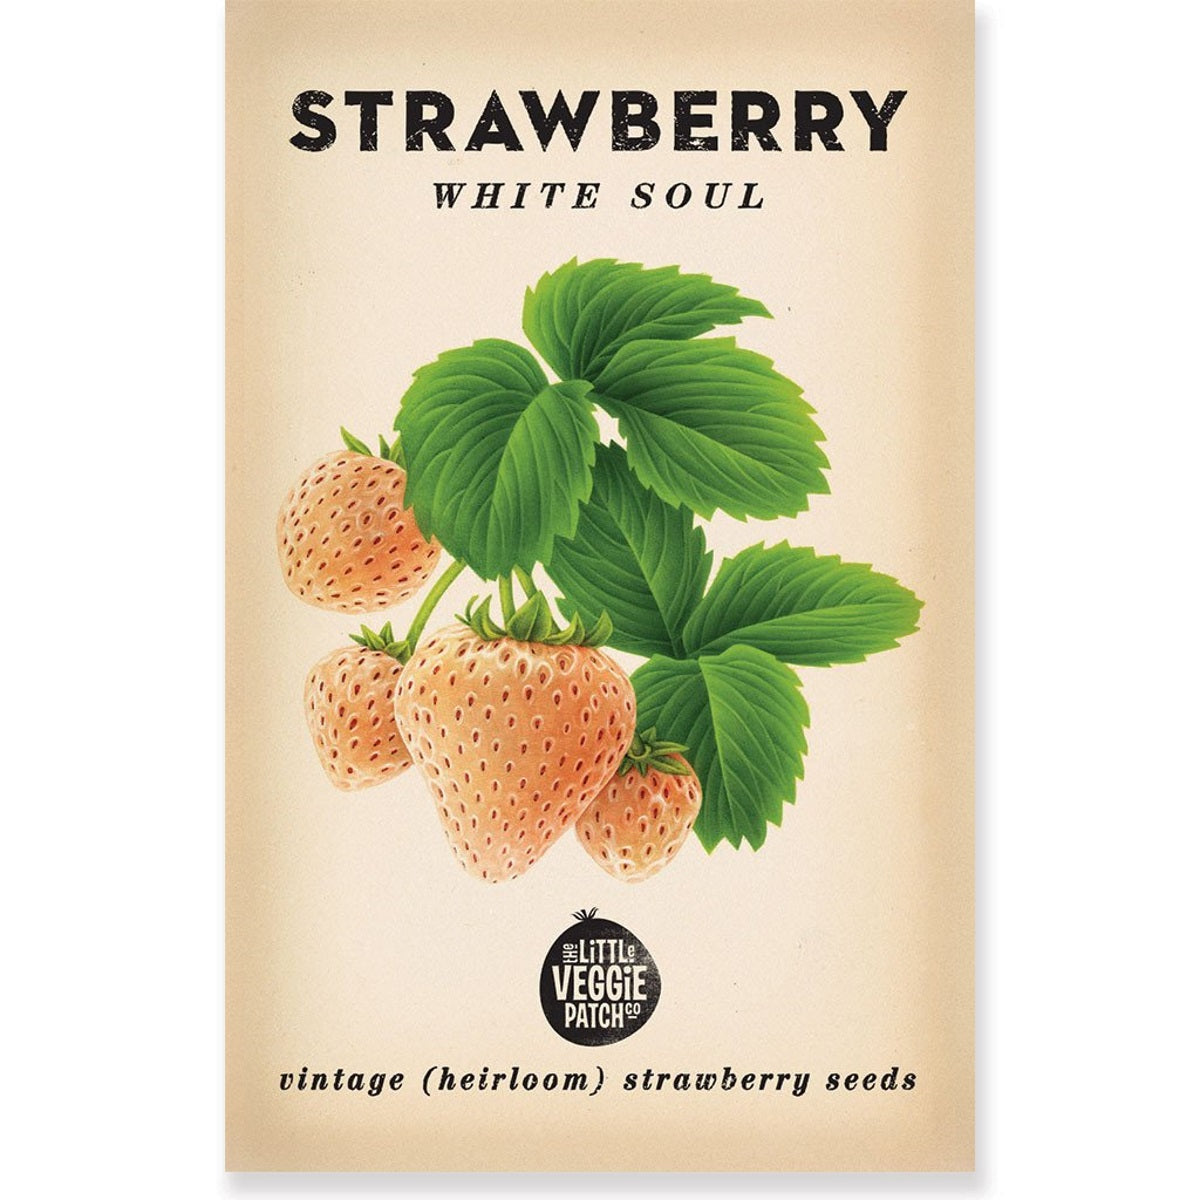 Strawberry (White Soul) Heirloom Seeds - Seeds - Throw Some Seeds - Australian gardening gifts and eco products online!